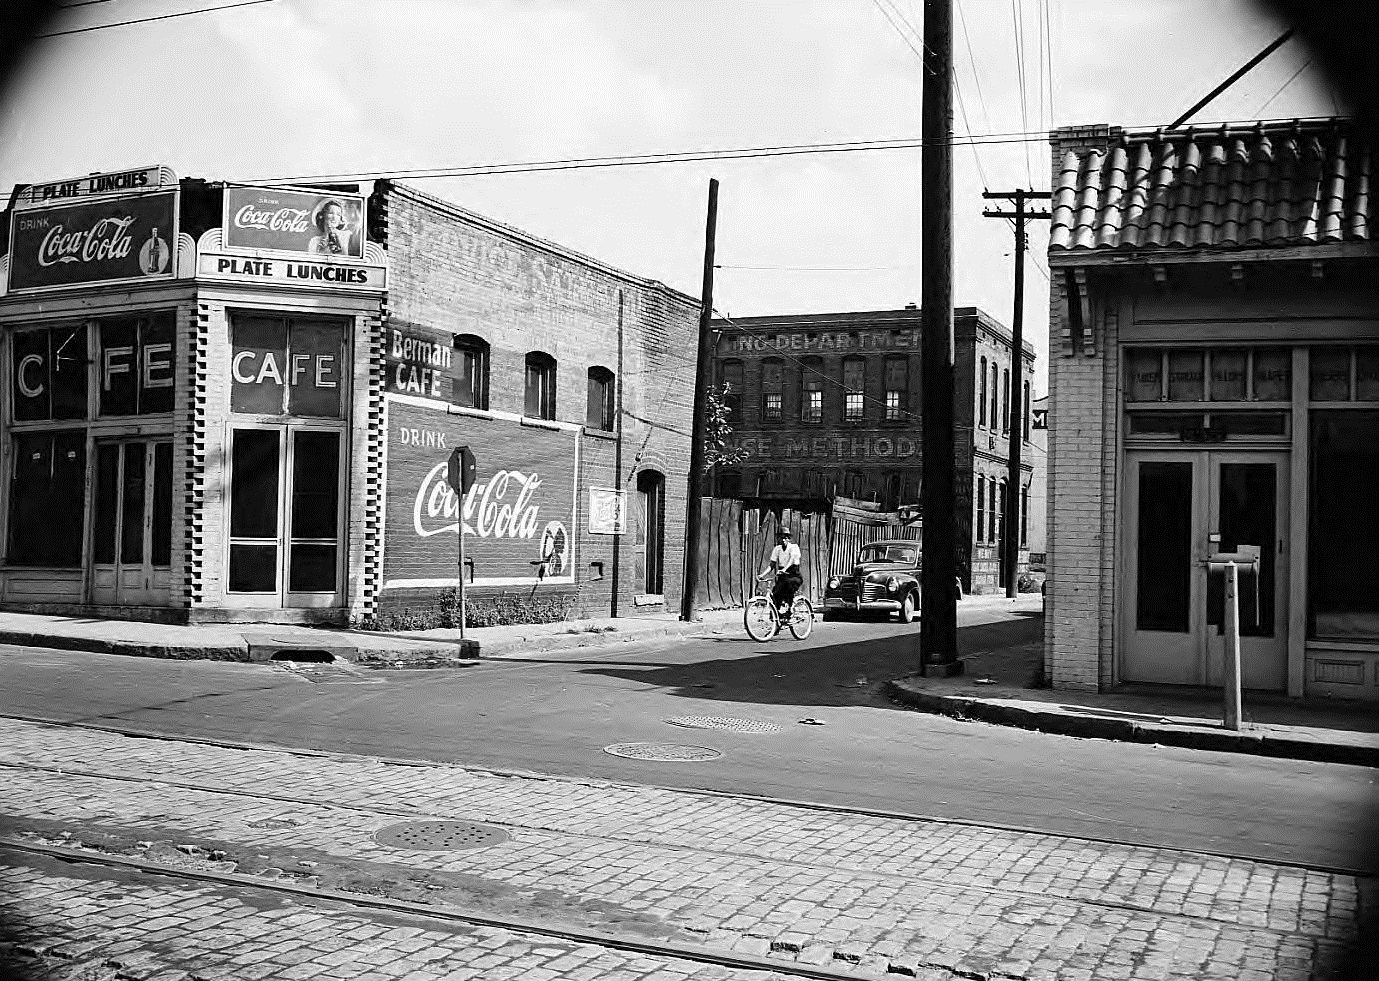 A Picture from the 1940's or 1950's taken from Edgewood Avenue showing the Trio Laundry Building in the background - Georgia State University Library